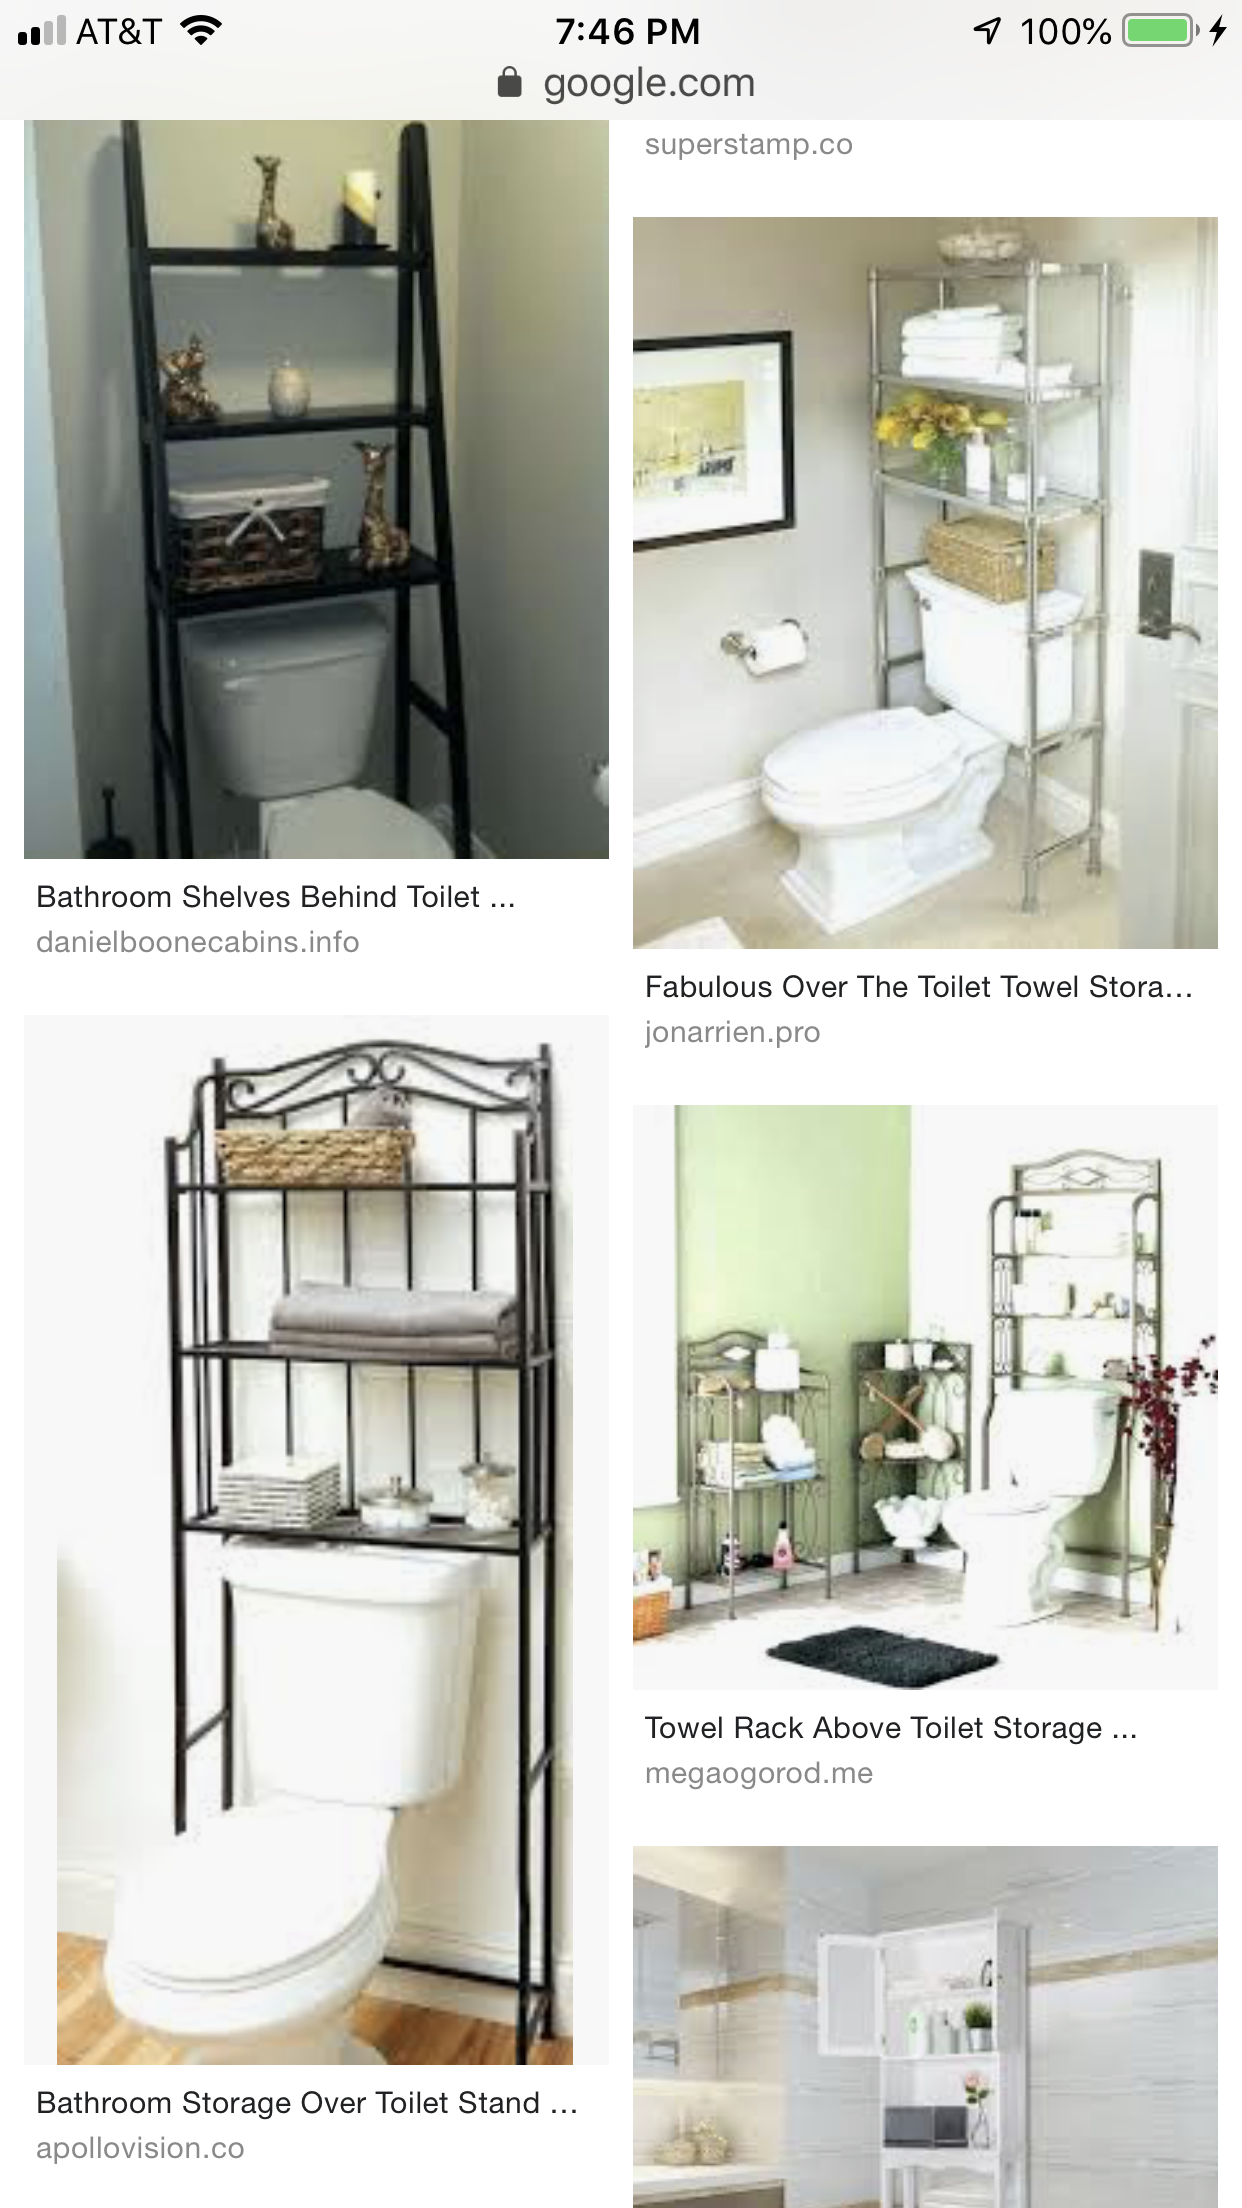 Pin By Shanna Weber On Bathroom Ideas Bathroom Storage Over Toilet Toilet Storage Shelves Behind Toilet